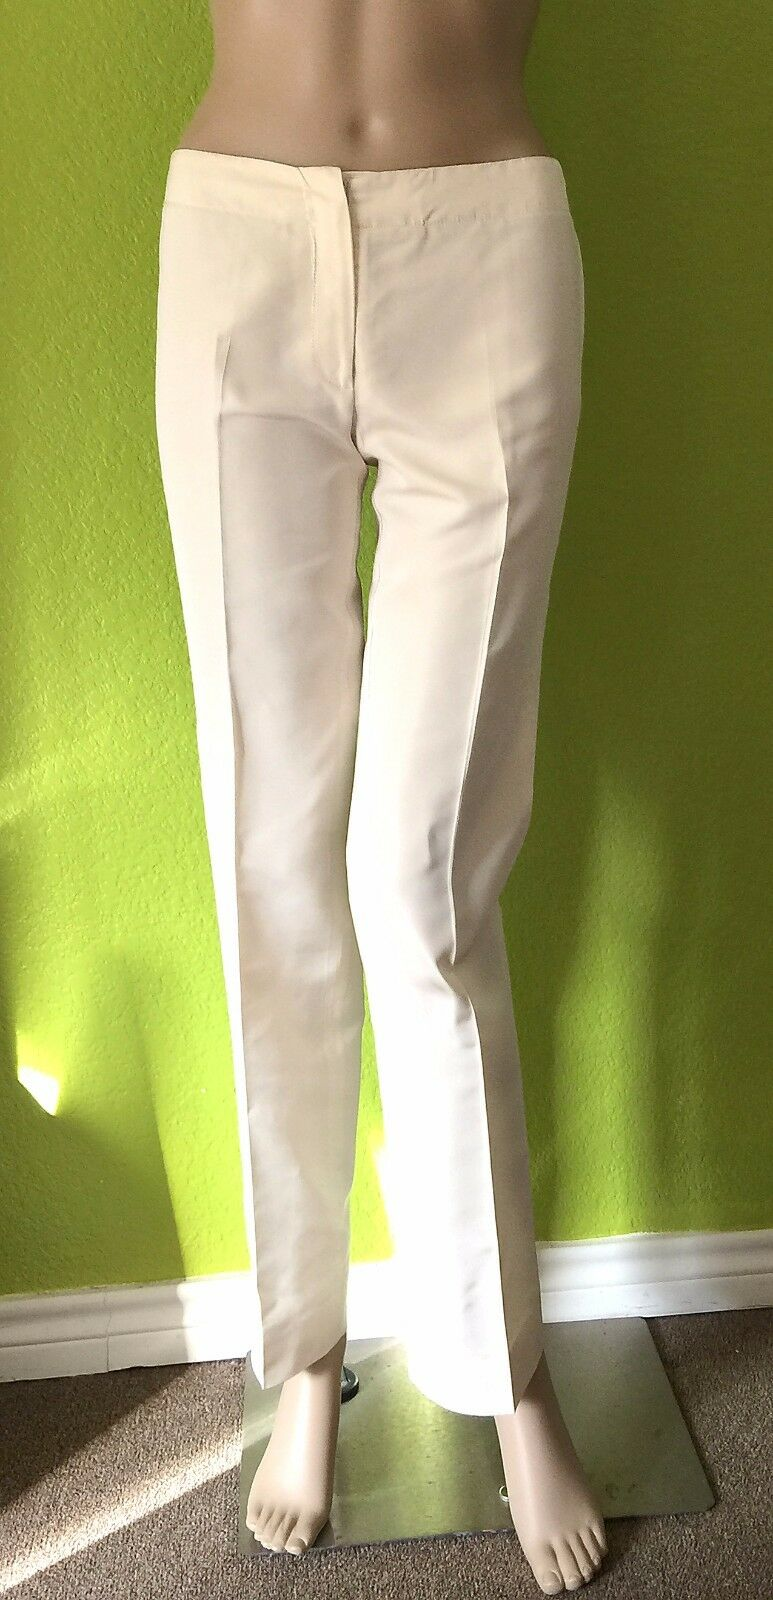 Etro Ivory 100% Silk Straight Leg Dress Pants - Größe 38 - US Größe 4 - EUC